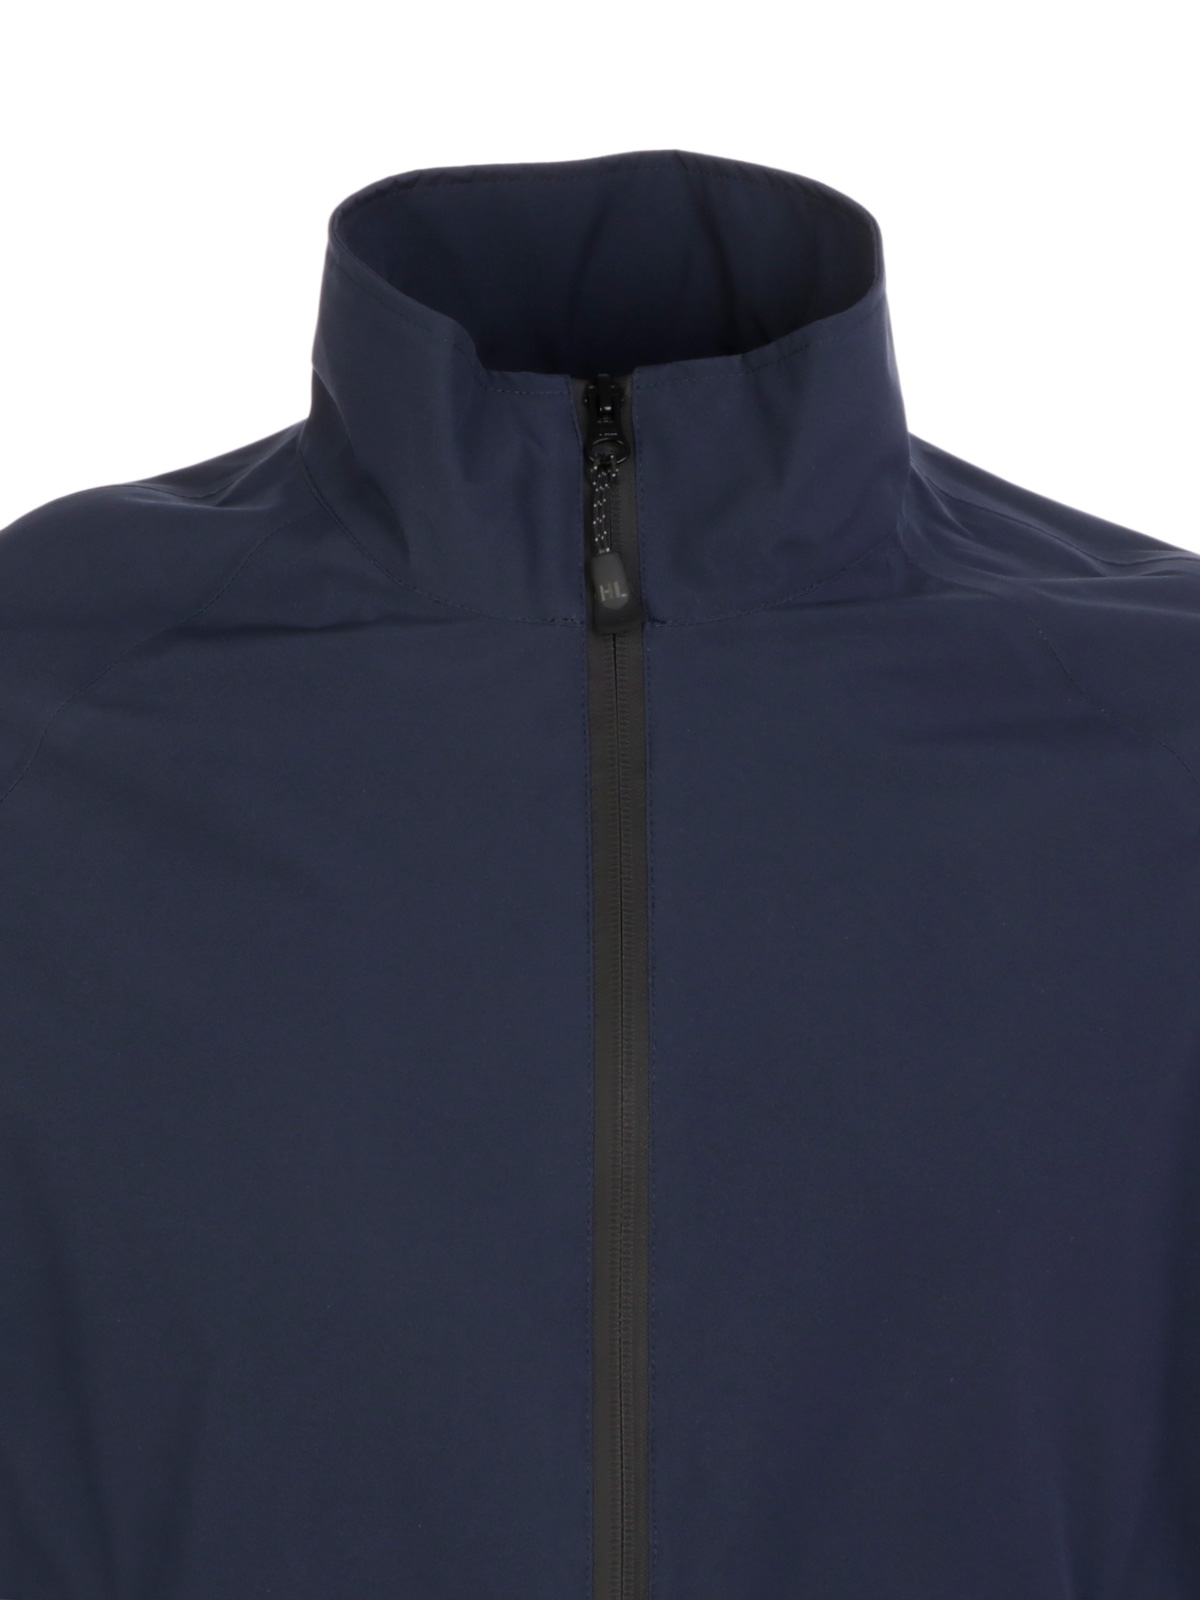 Picture of HENRI LLOYD | Men's Standing Collar Sail Jacket